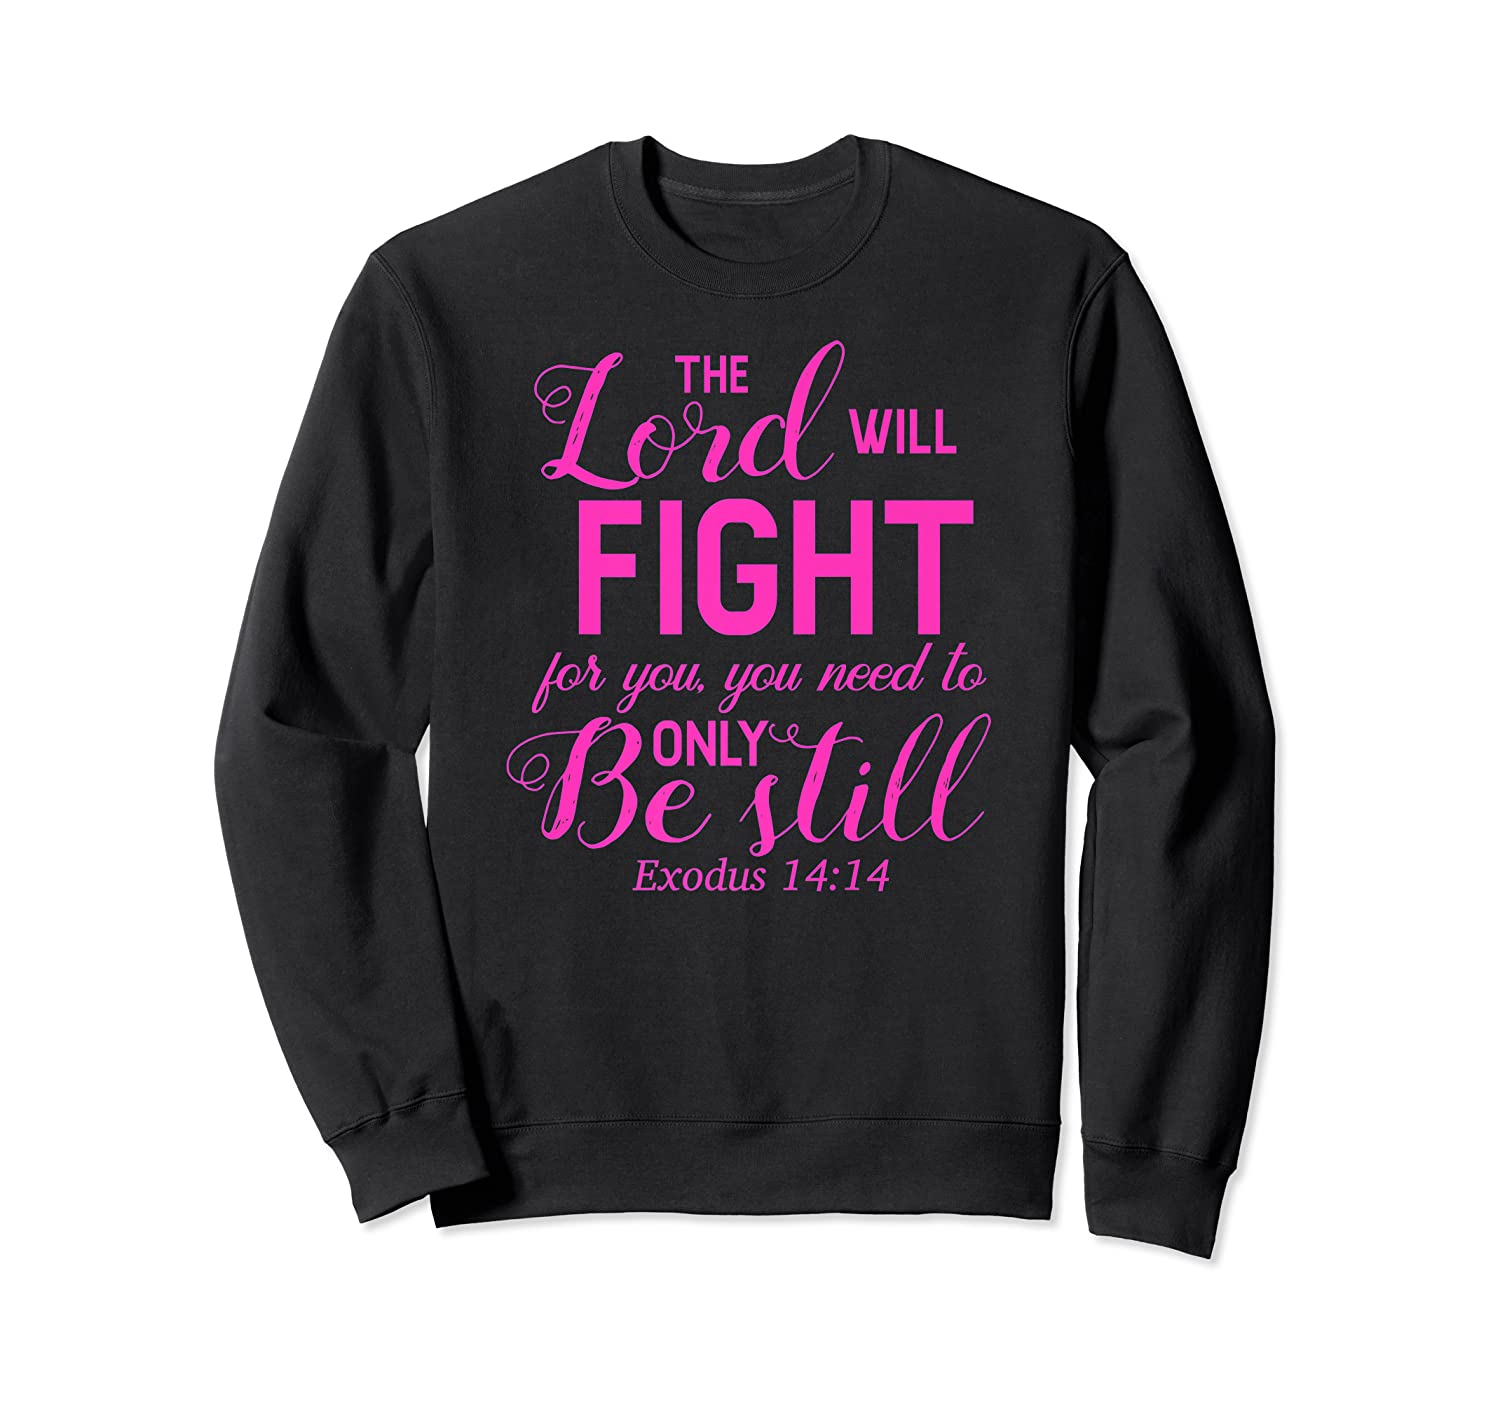 The Lord Will Fight For You, You Need Only To Be Still Verse Shirts Crewneck Sweater